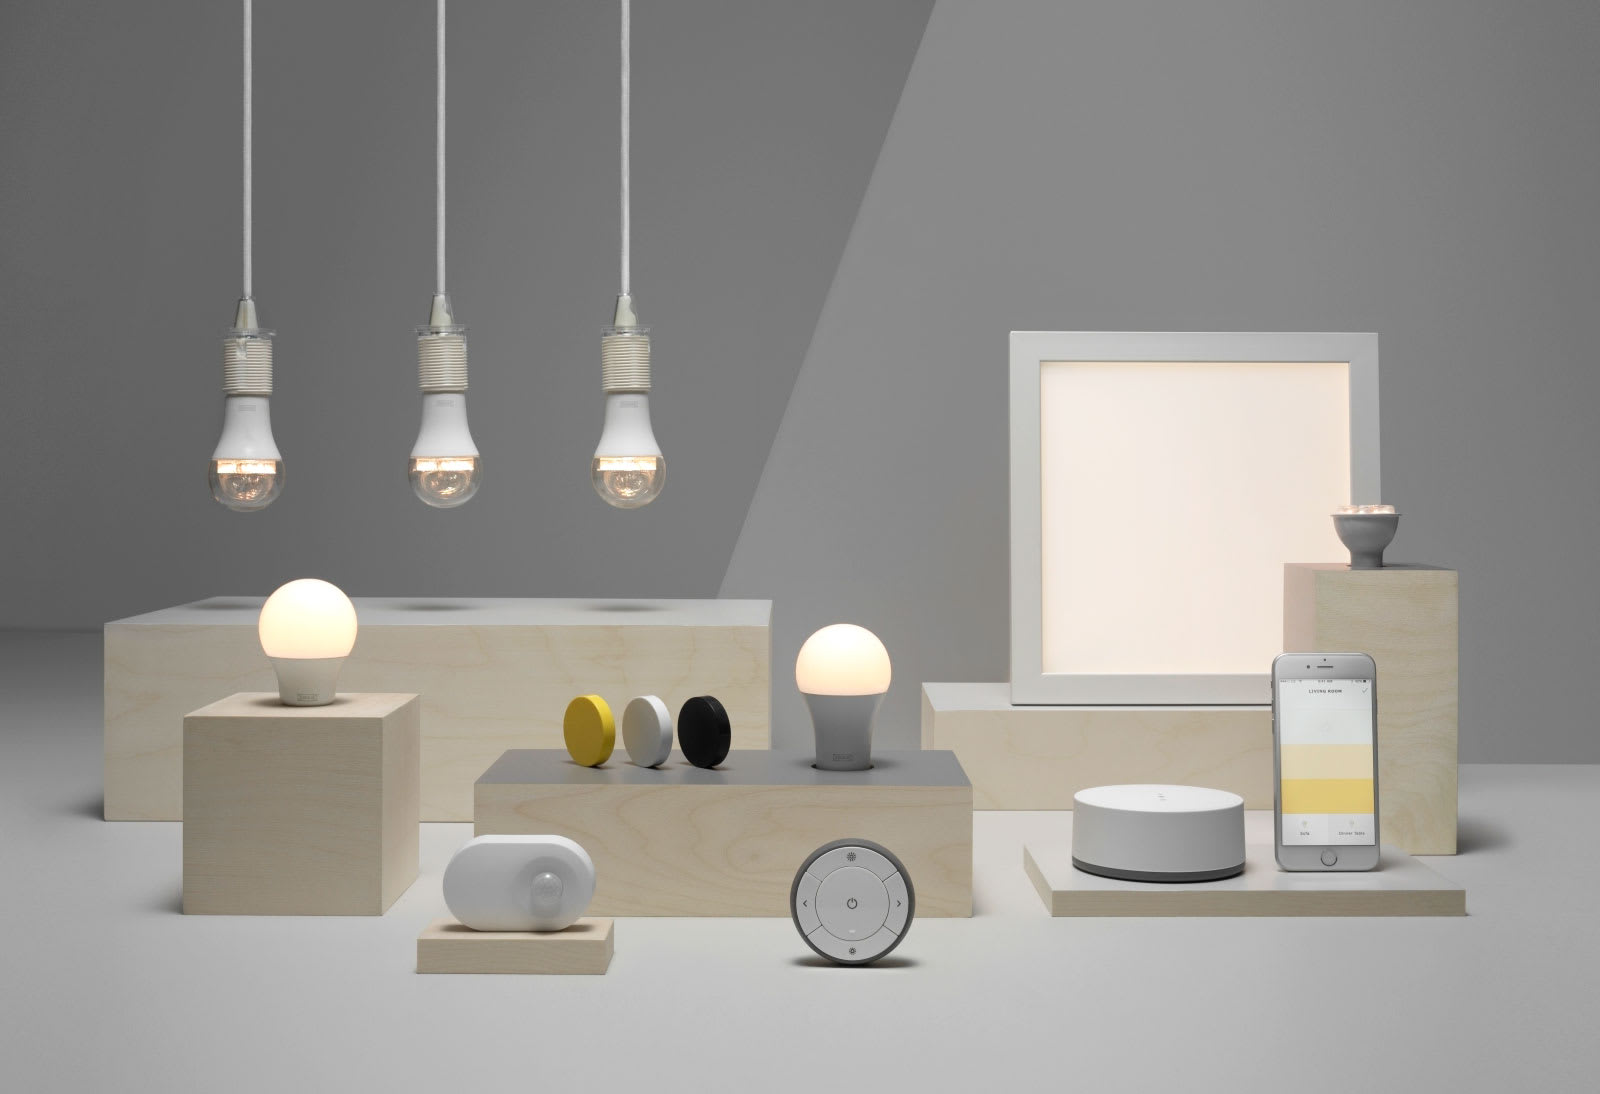 IKEA's smart lighting officially supports HomeKit